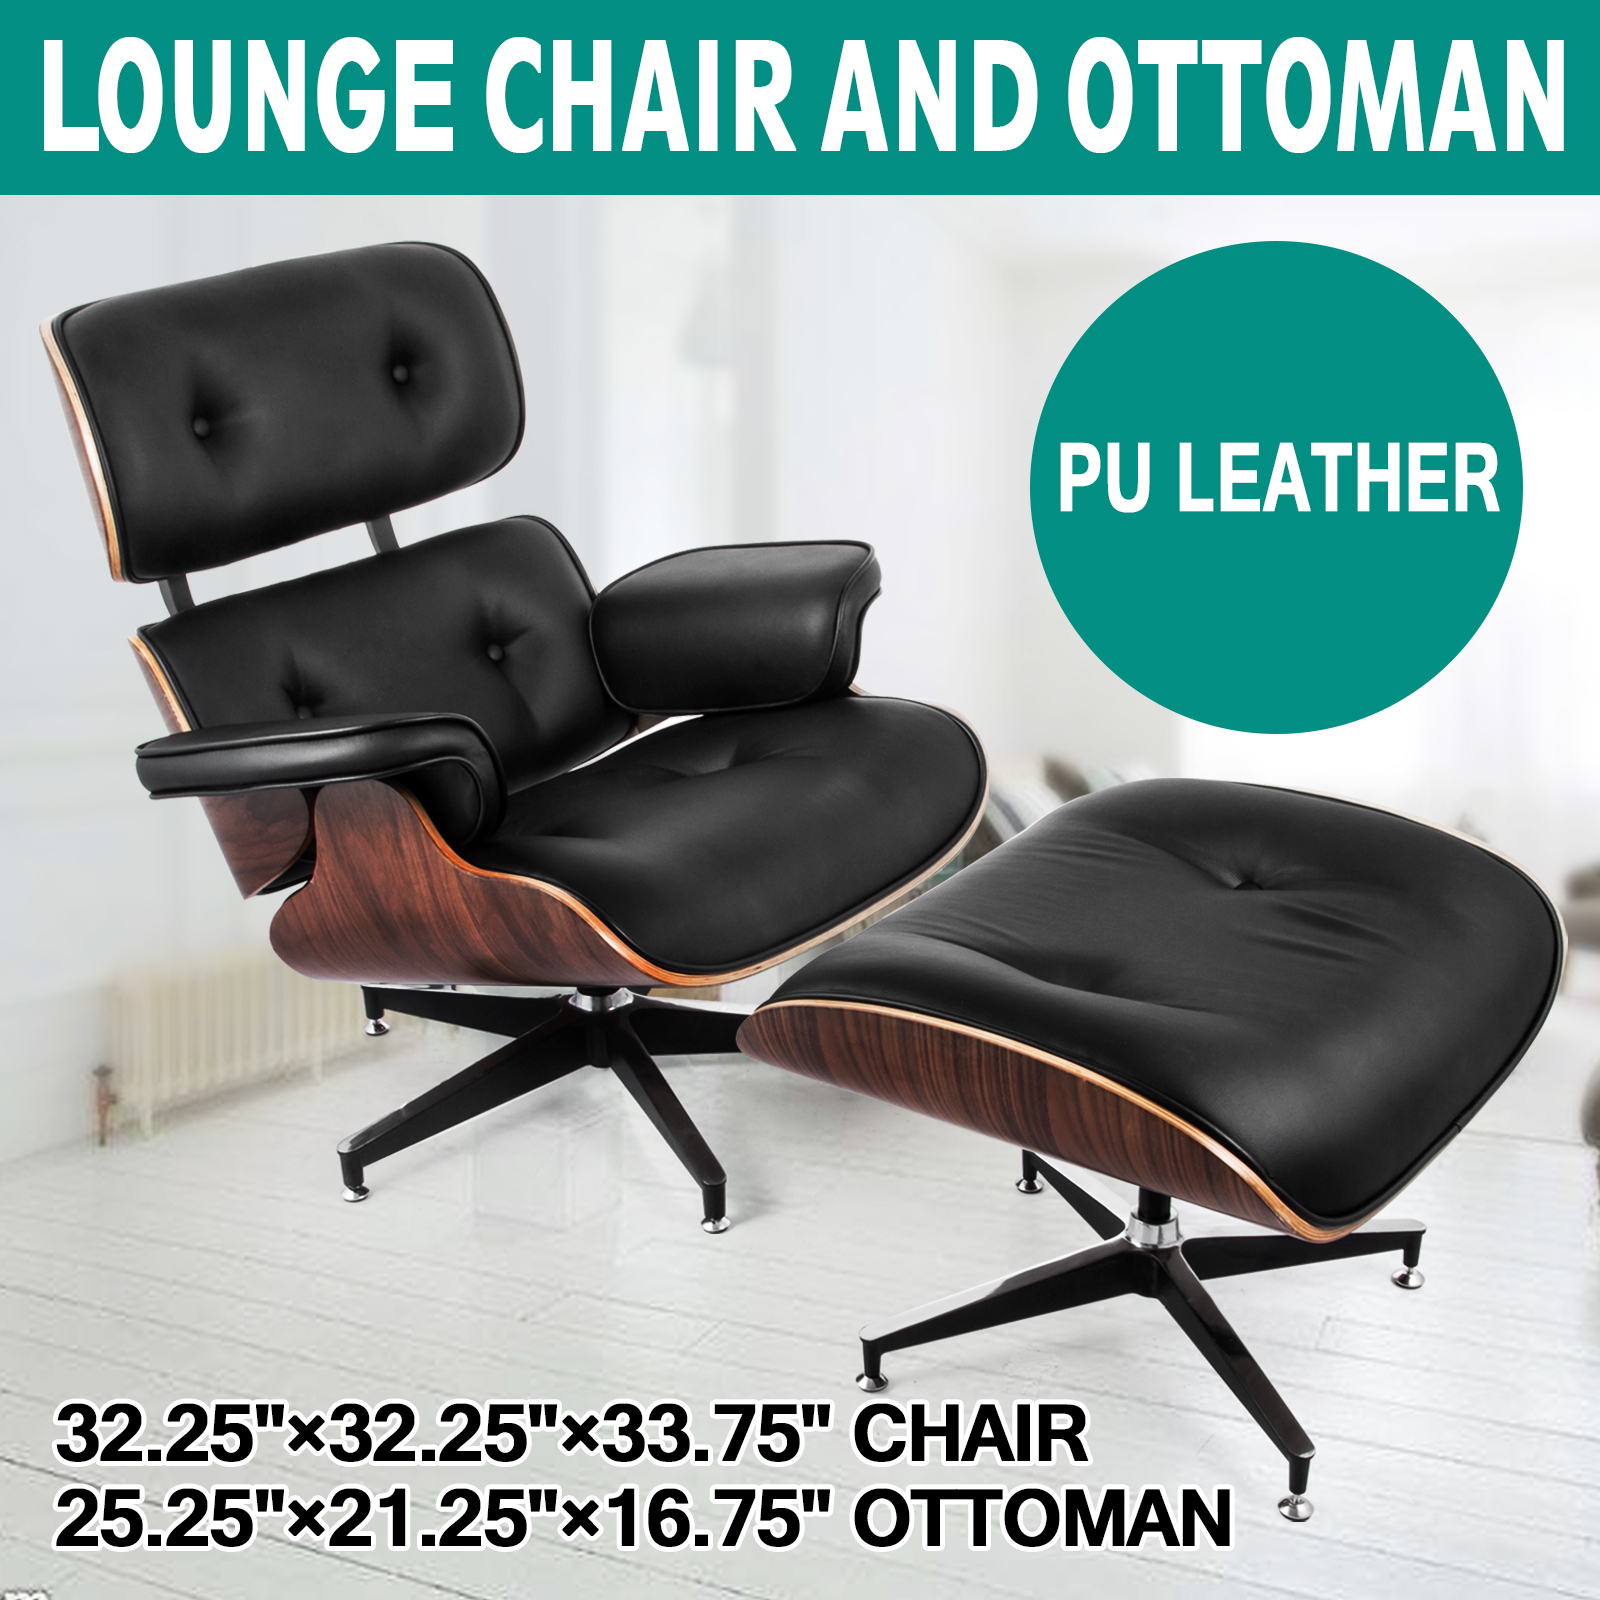 Remarkable Details About Eames Style Lounge Chair Ottoman Eames 100 Pu Leather Chair Black Rosewood Squirreltailoven Fun Painted Chair Ideas Images Squirreltailovenorg